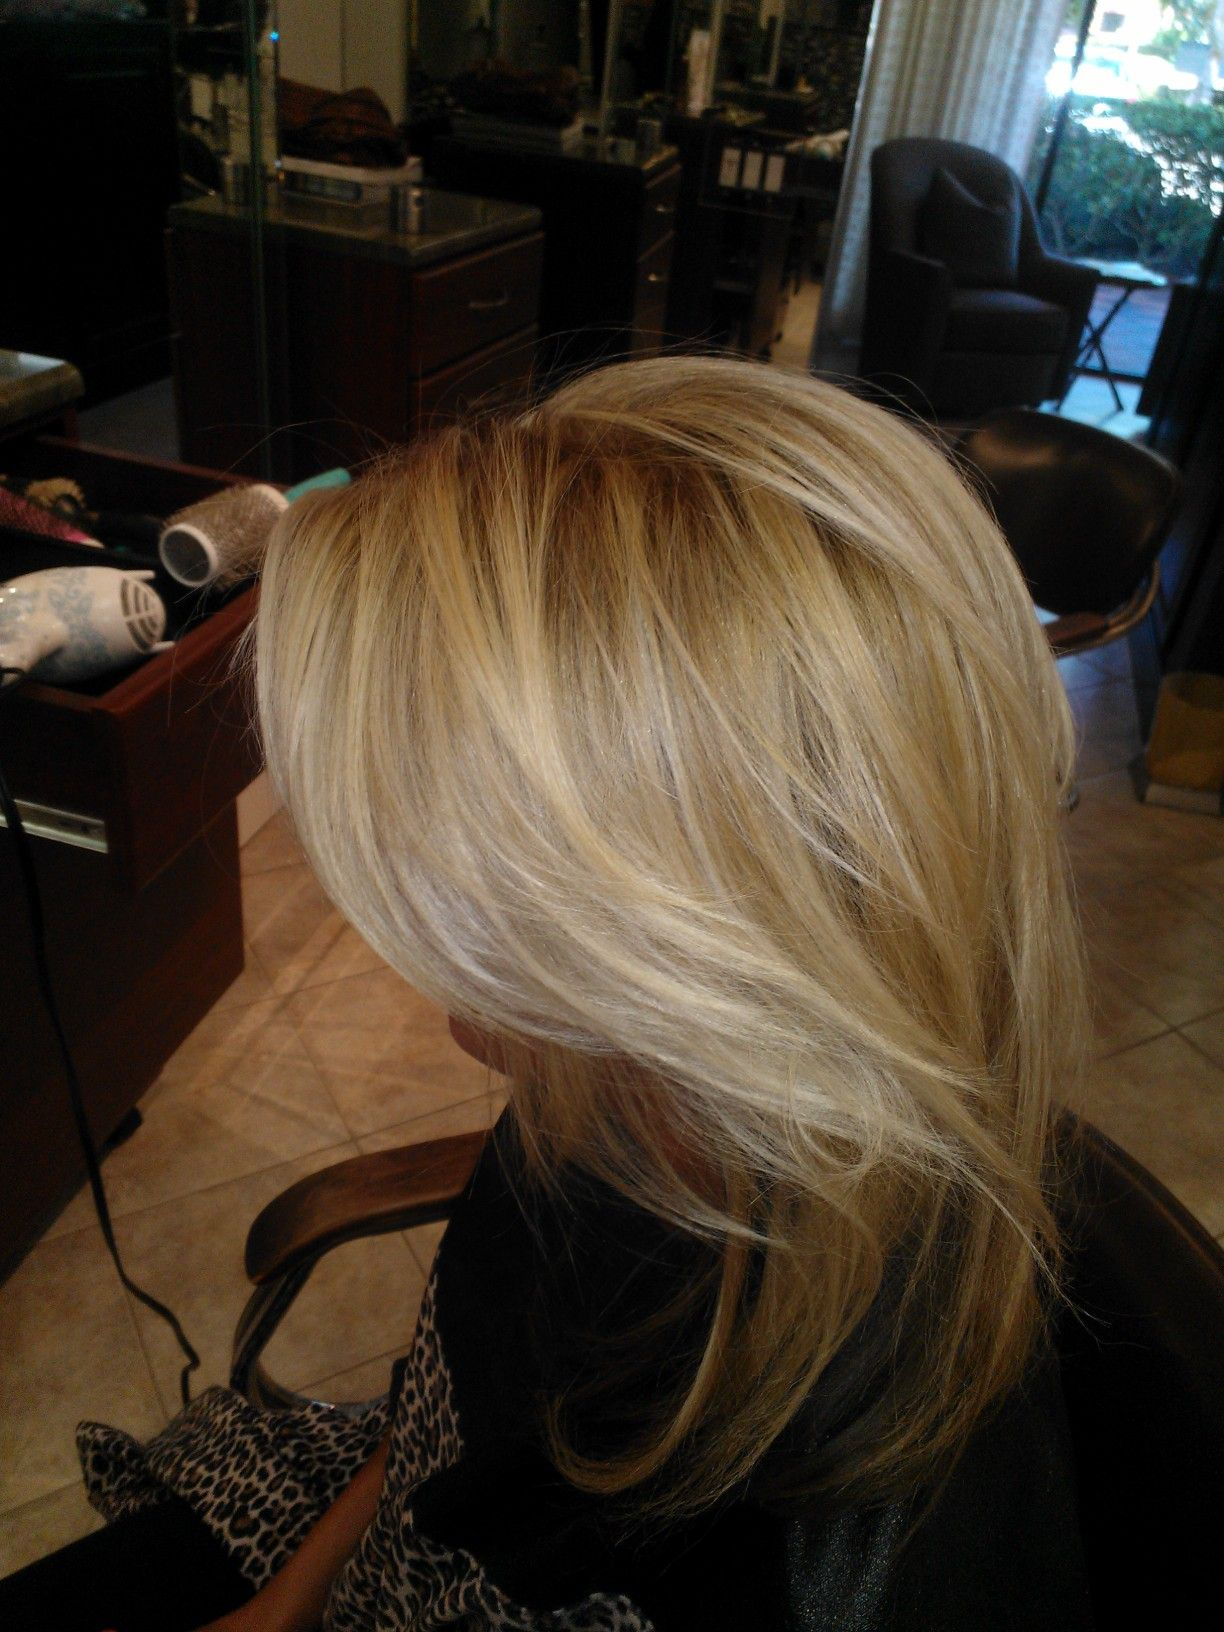 Beautiful dimensional blond with a slightly darker root is so modern